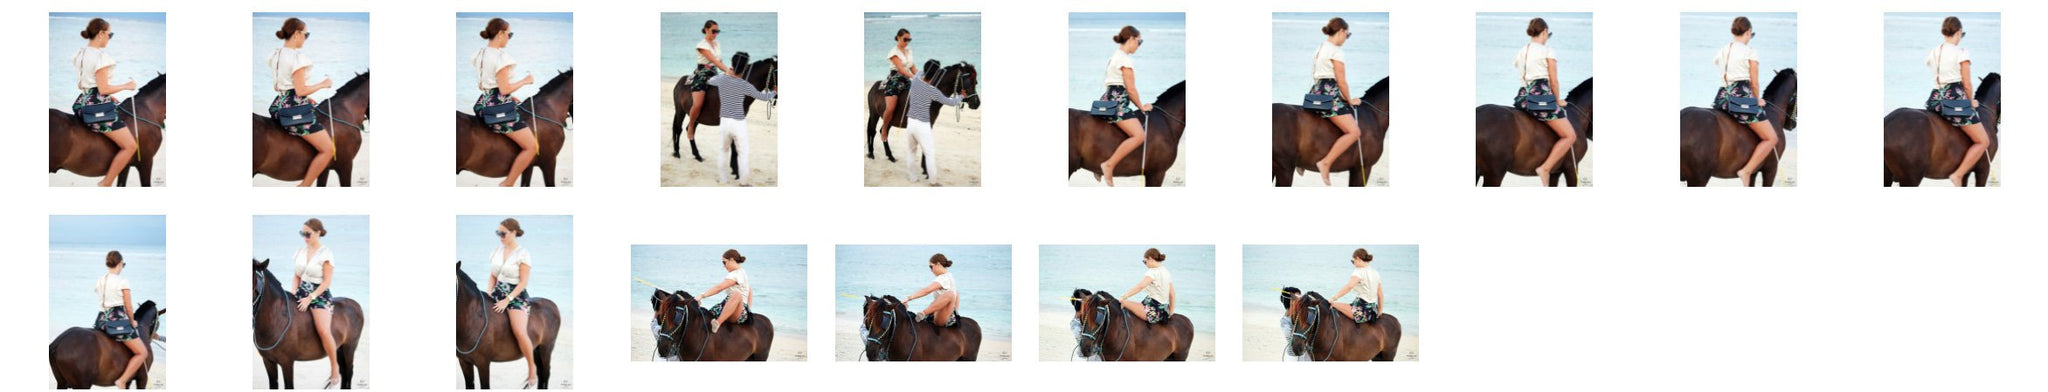 Liz in Skirt with Handbag Riding Bareback on Brown Pony - Riding.Vision